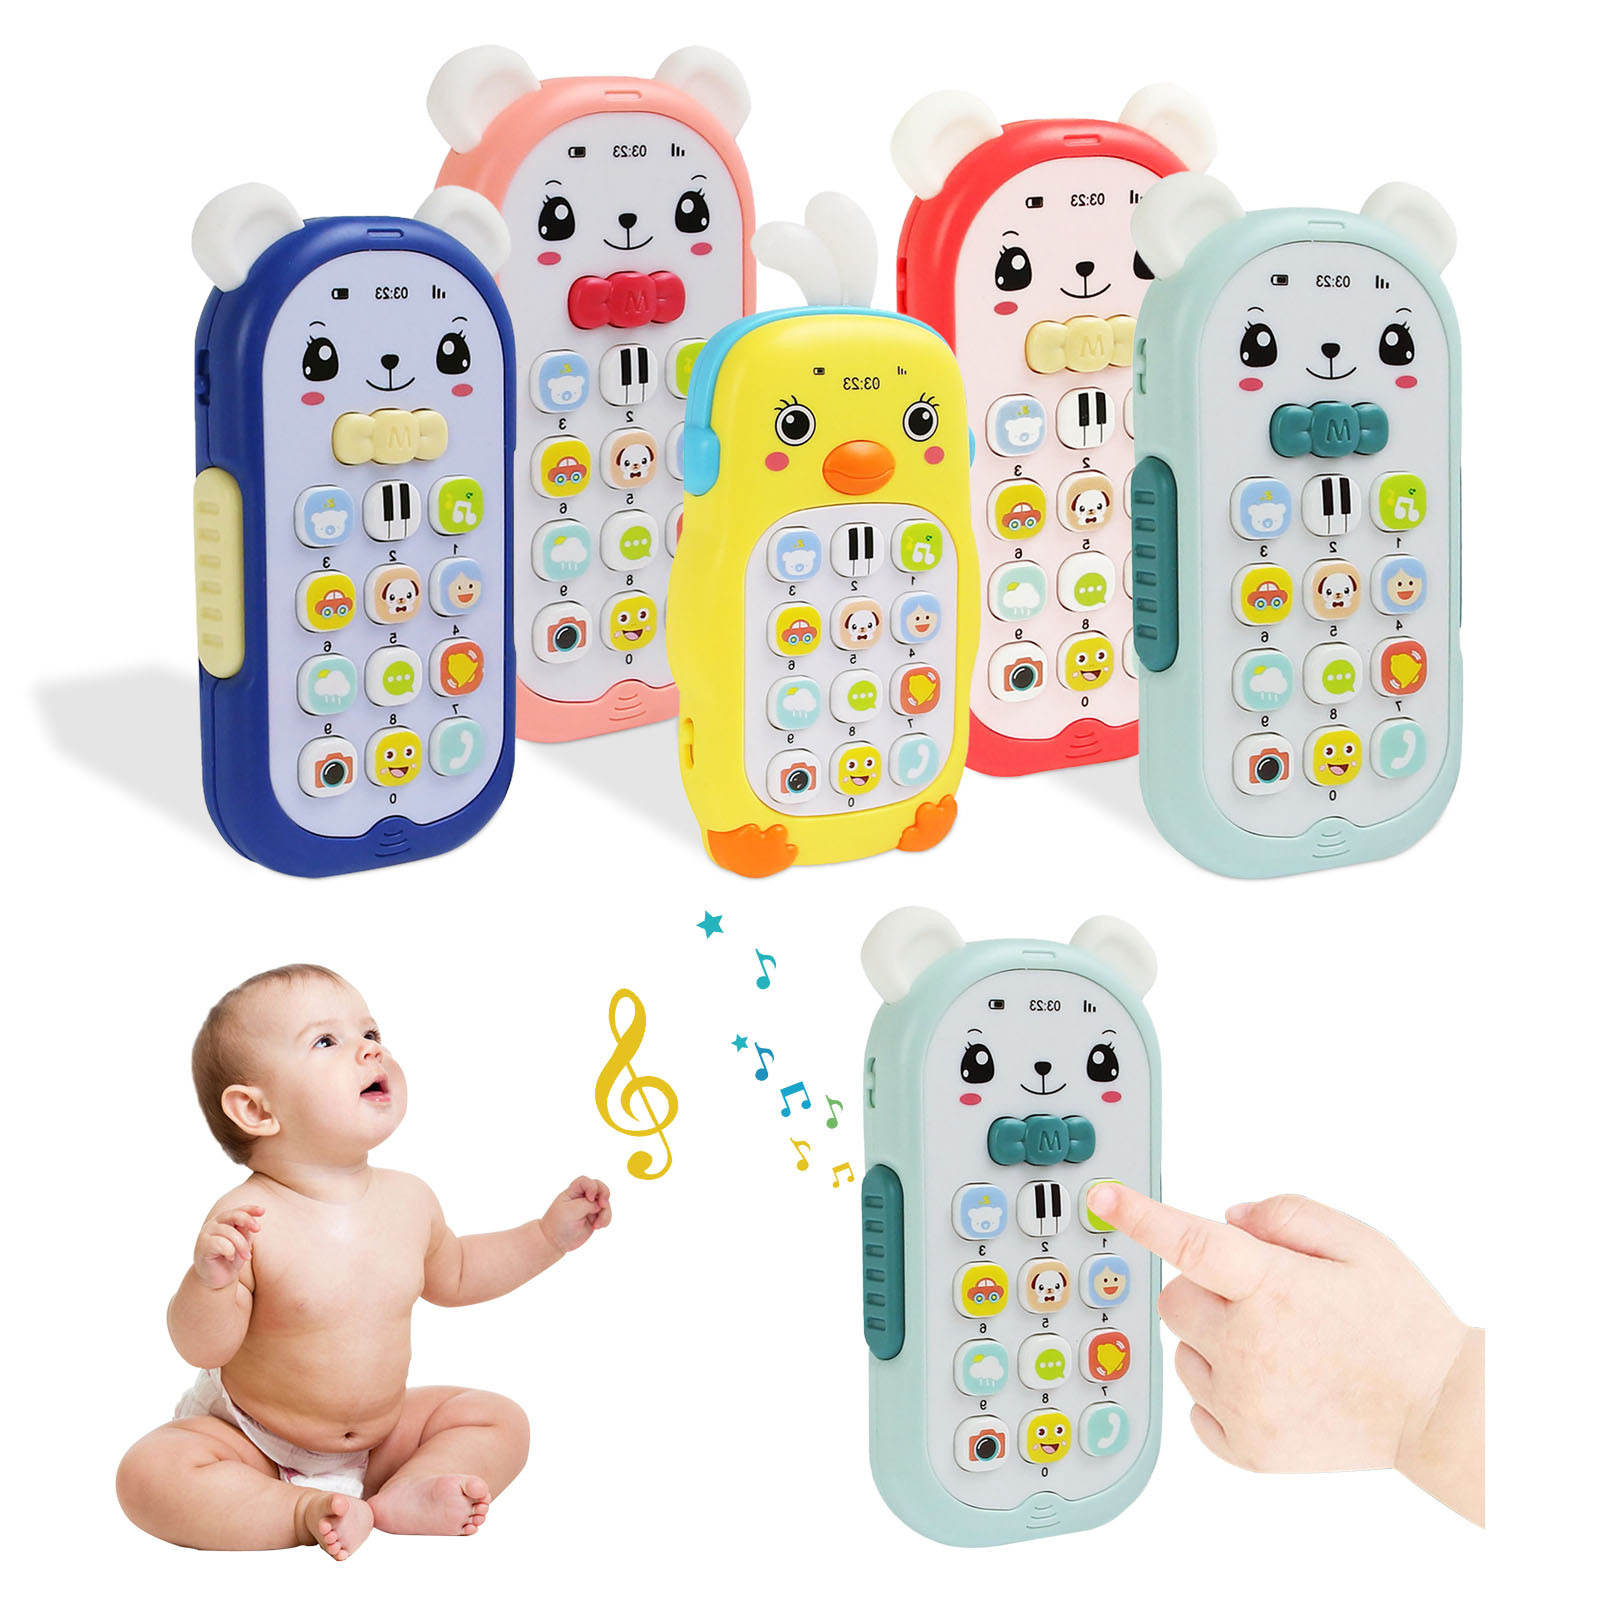 Baby Gutta-percha Toy Face Changing Music Mobile Phone Baby Toys Sleeping Artifact Simulation Telephone Early Educational Toy